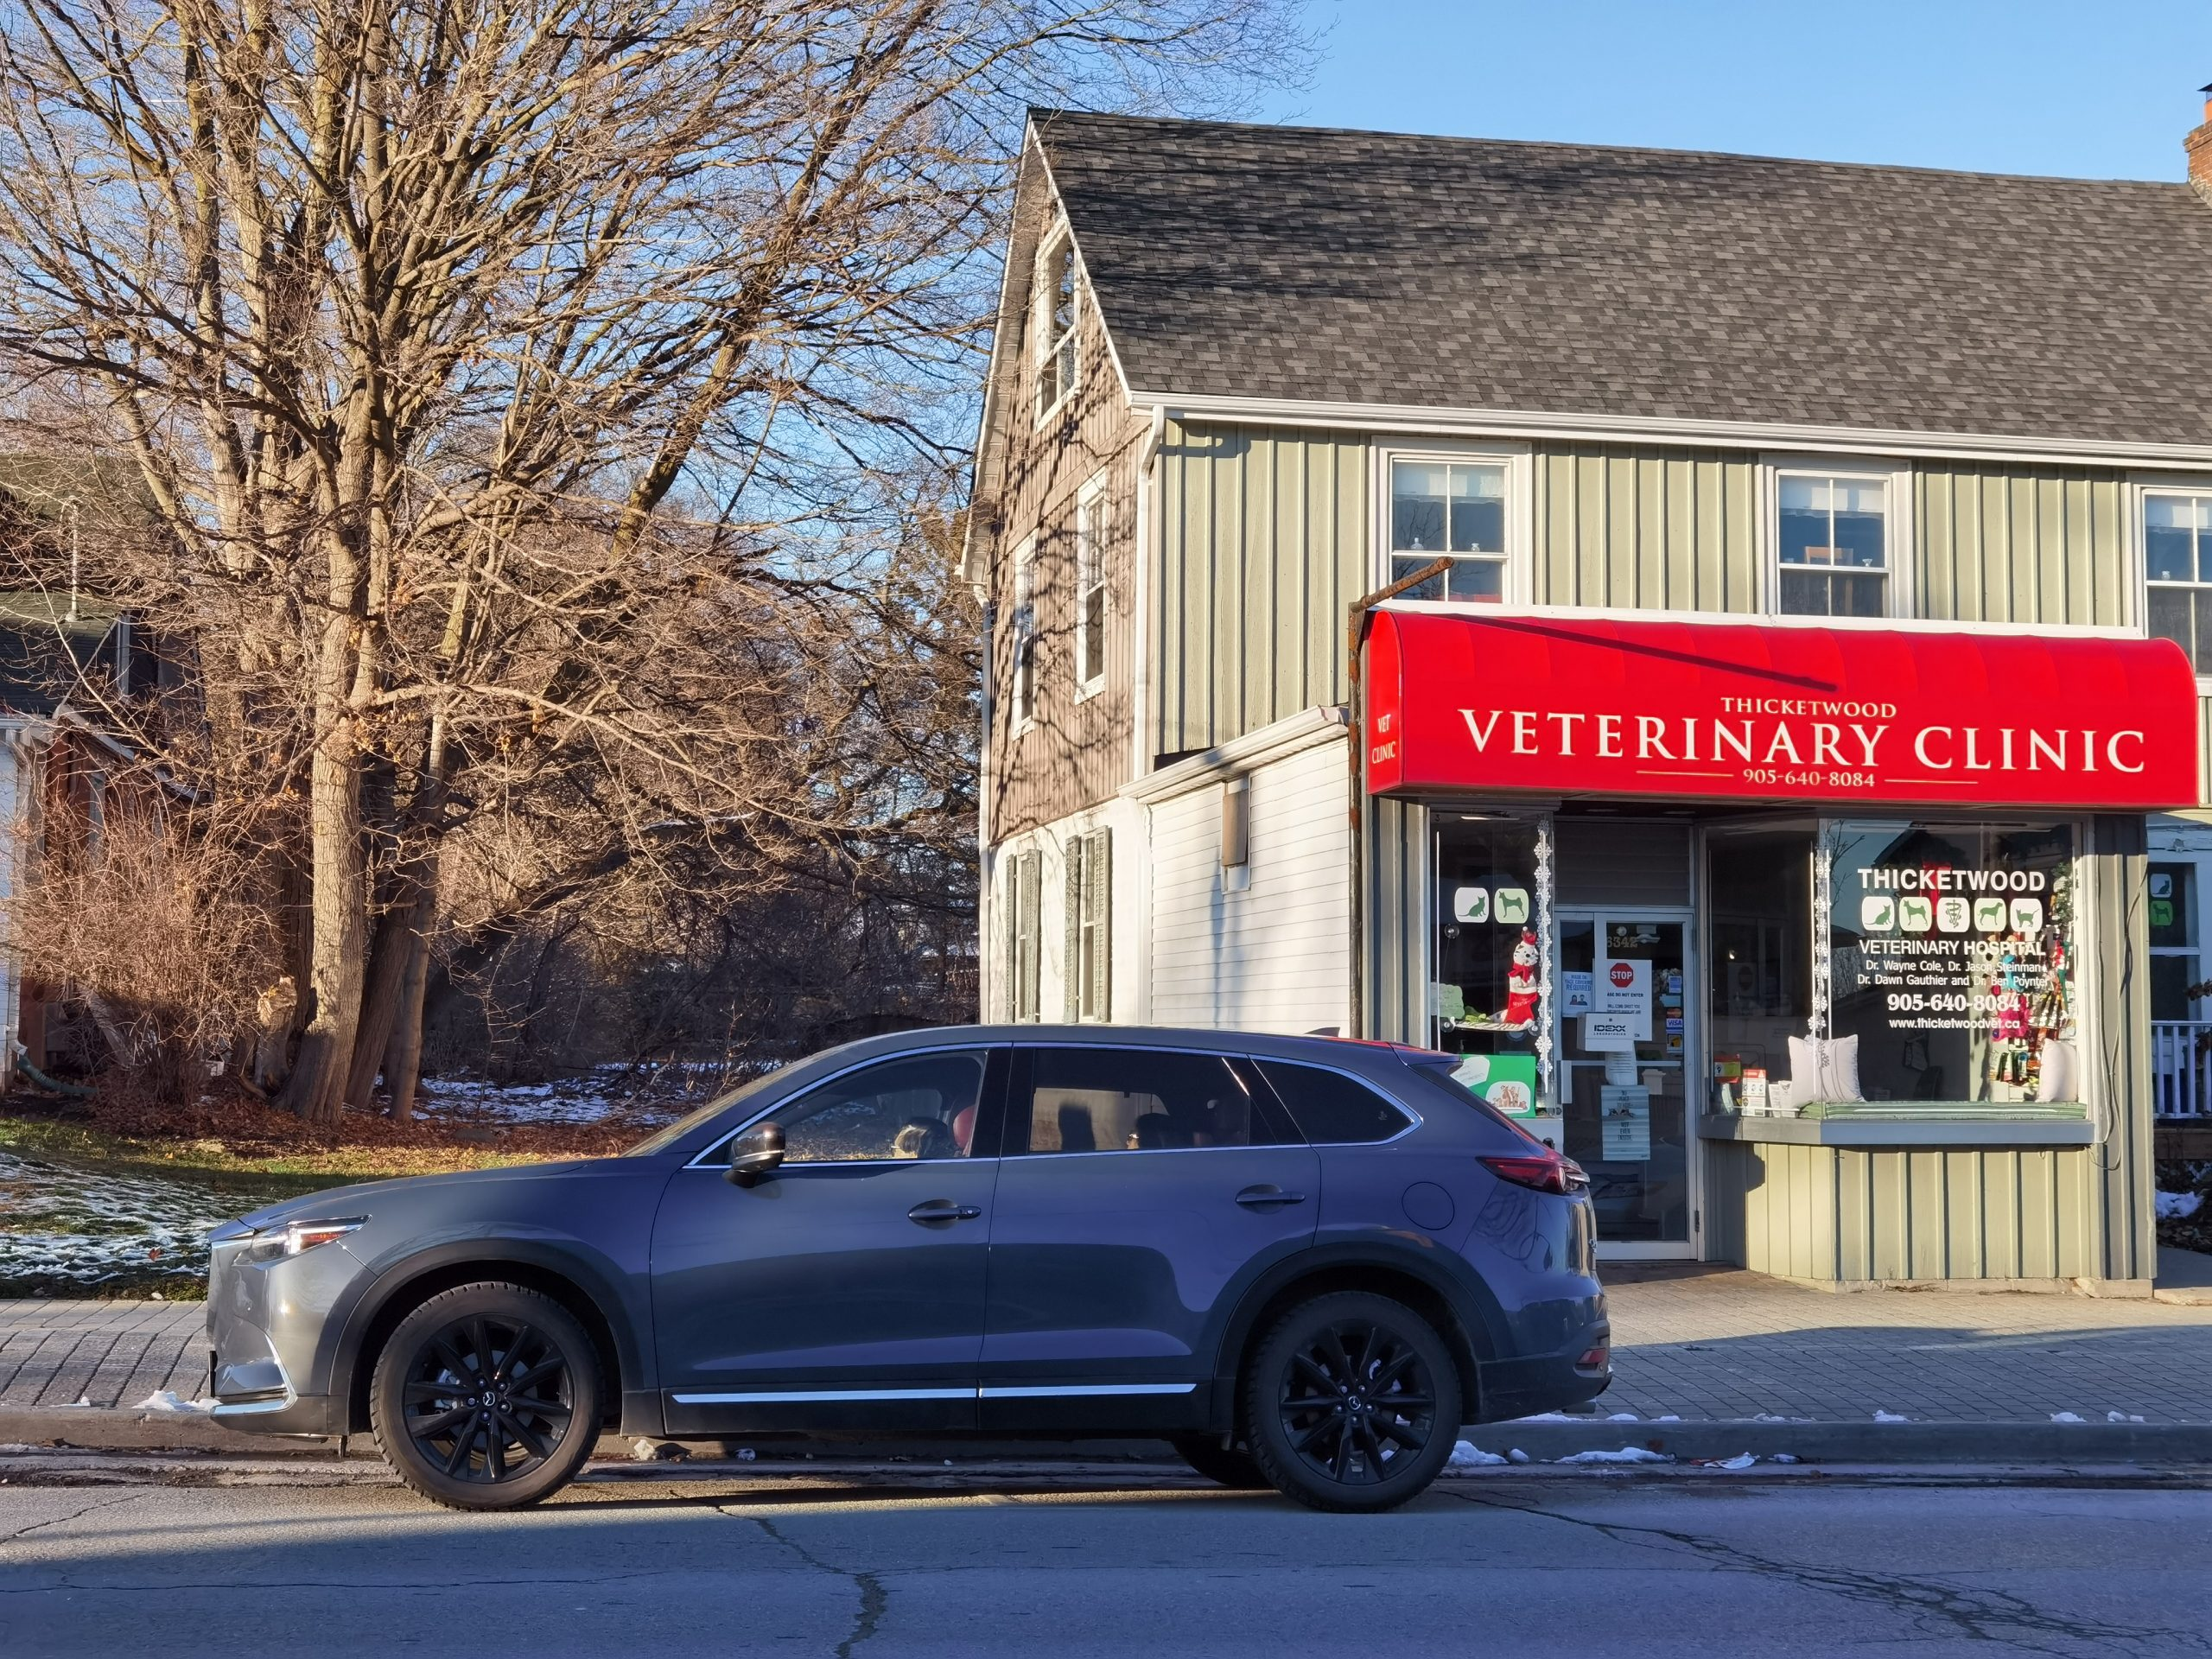 Thicketwood Veterinary Hospital – Schitt's Creek (Filming Location) – Whitchurch-Stouffville, Ontario, Canada [ONTARIO TRAVEL SERIES]